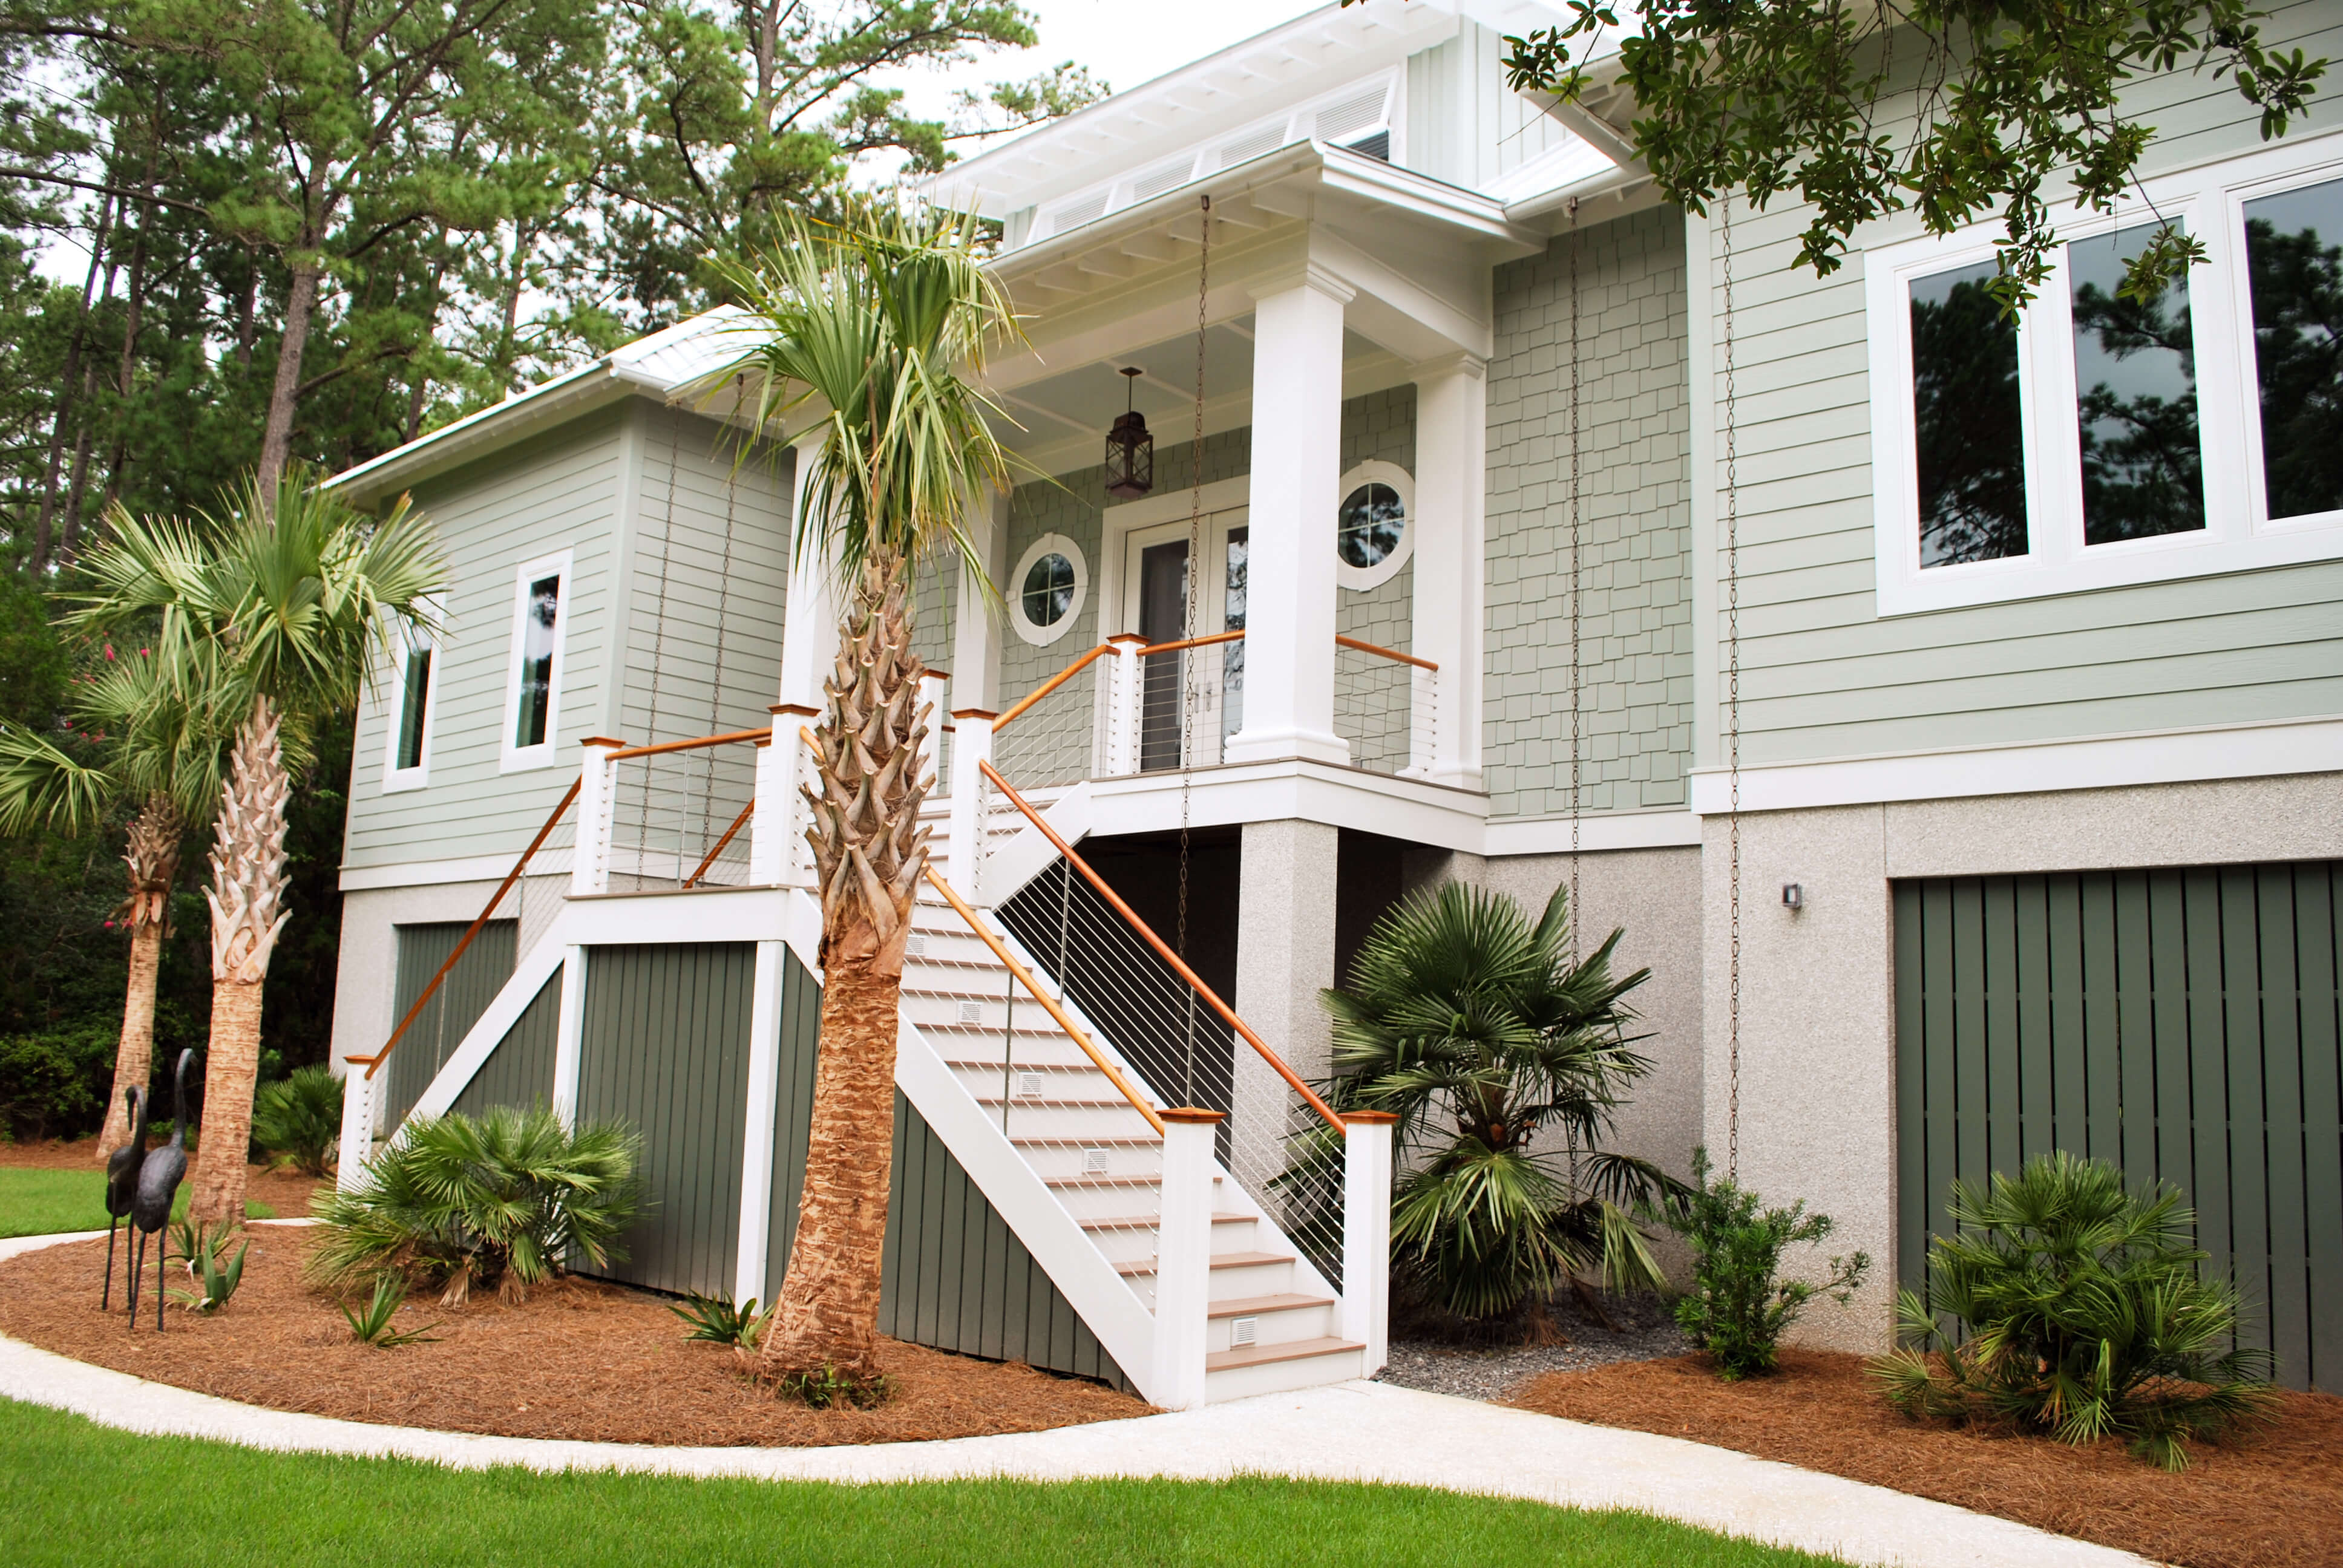 Angled look at front entrance with elaborate, split direction staircase featuring natural wood rails.